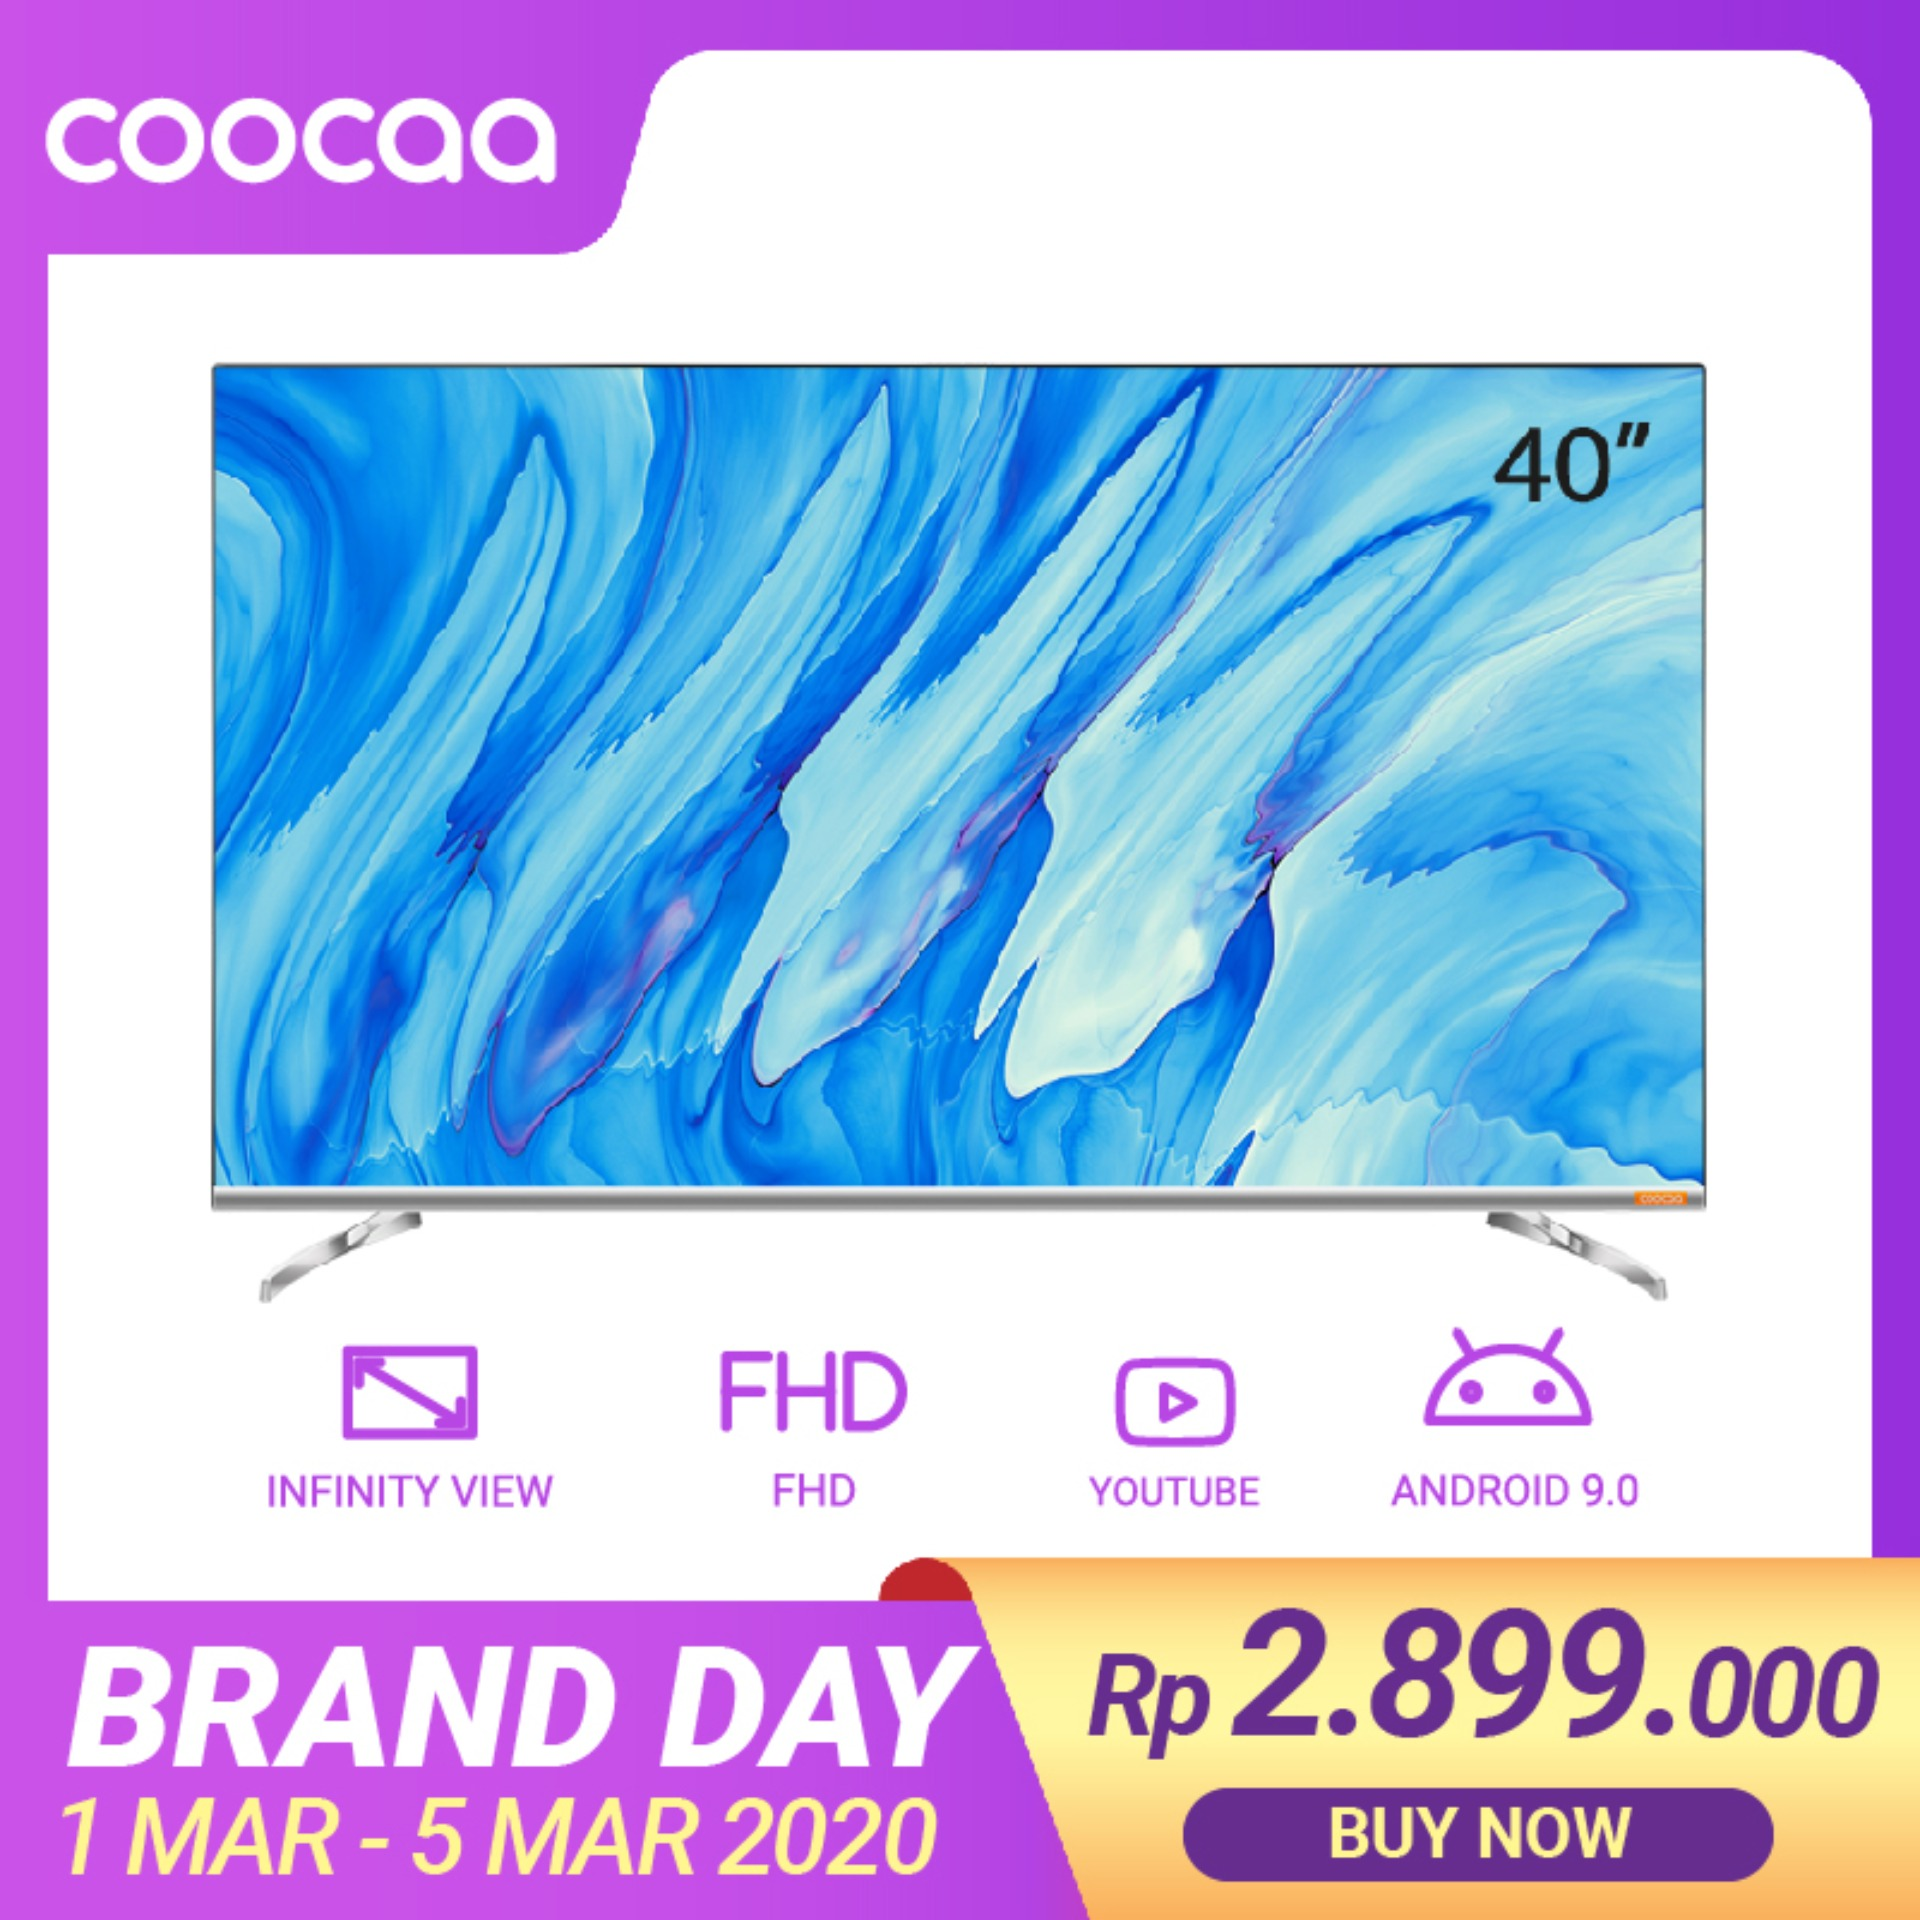 COOCAA 40 inch Android 9.0 Smart LED TV -Infinity View- Full HD- Slim- Wifi (Model 40S6G)